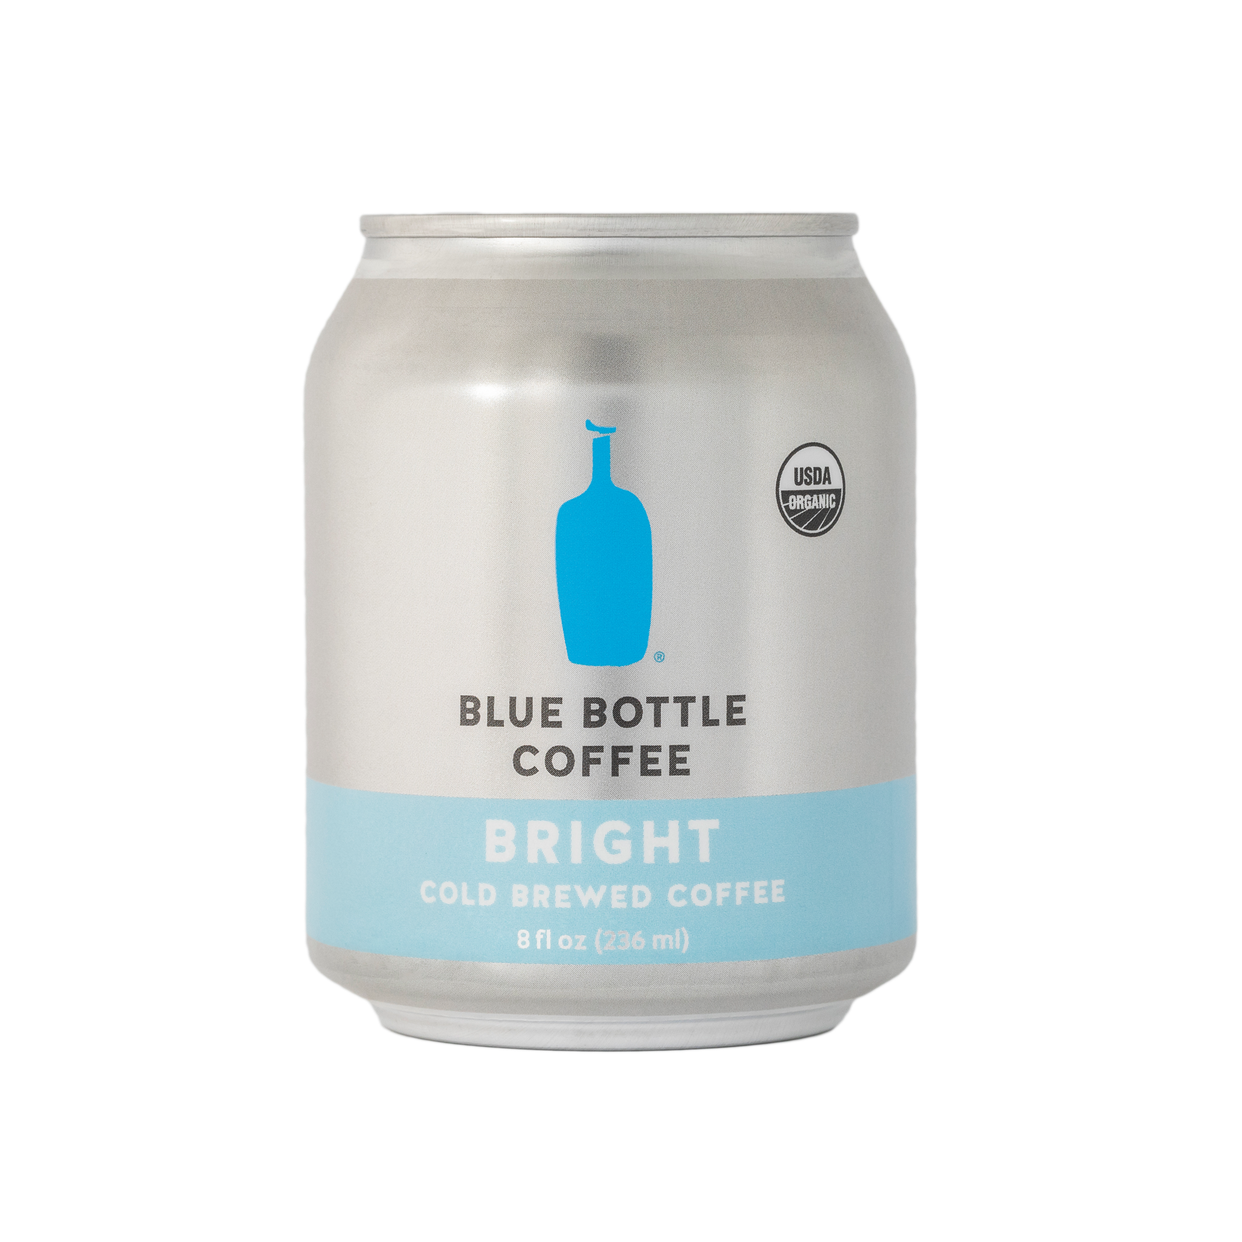 Blue Bottle Bright Cold Brewed Coffee.